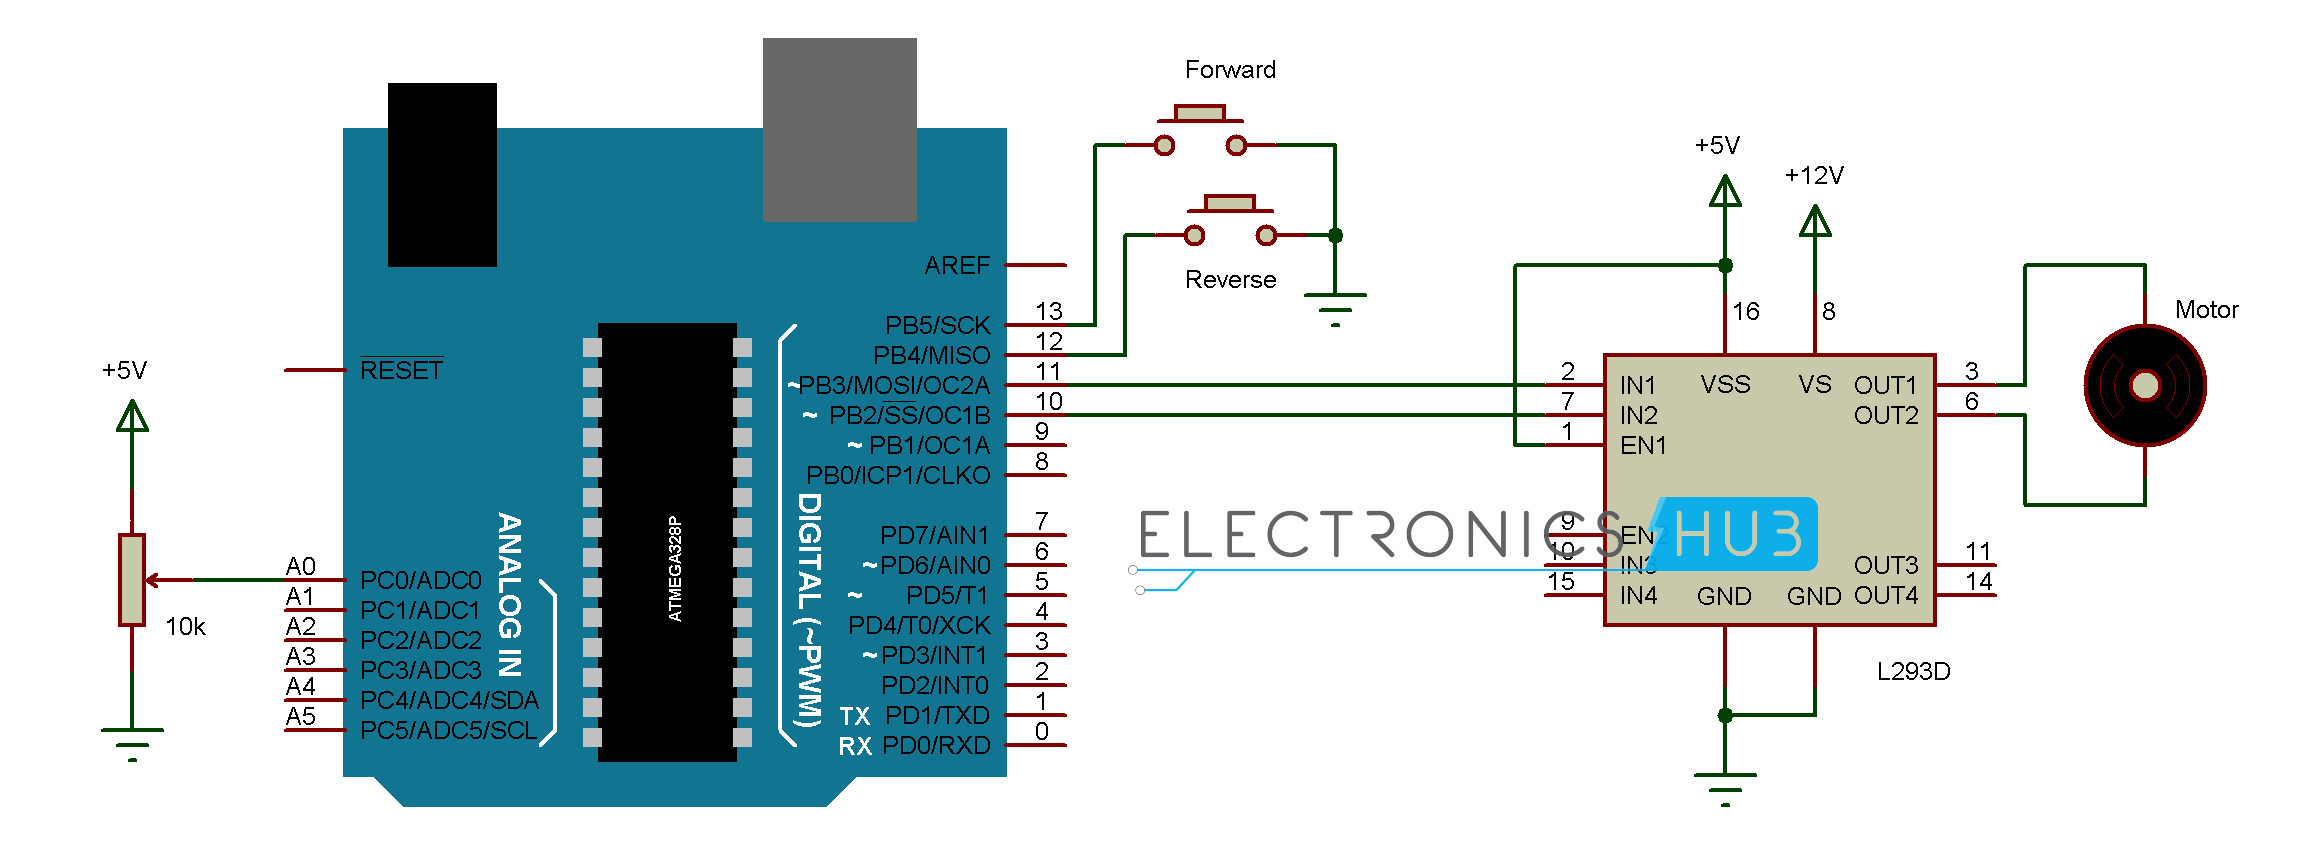 Dc Motor Wiring Diagram Also Simple Dc Motor Control Circuit Diagram